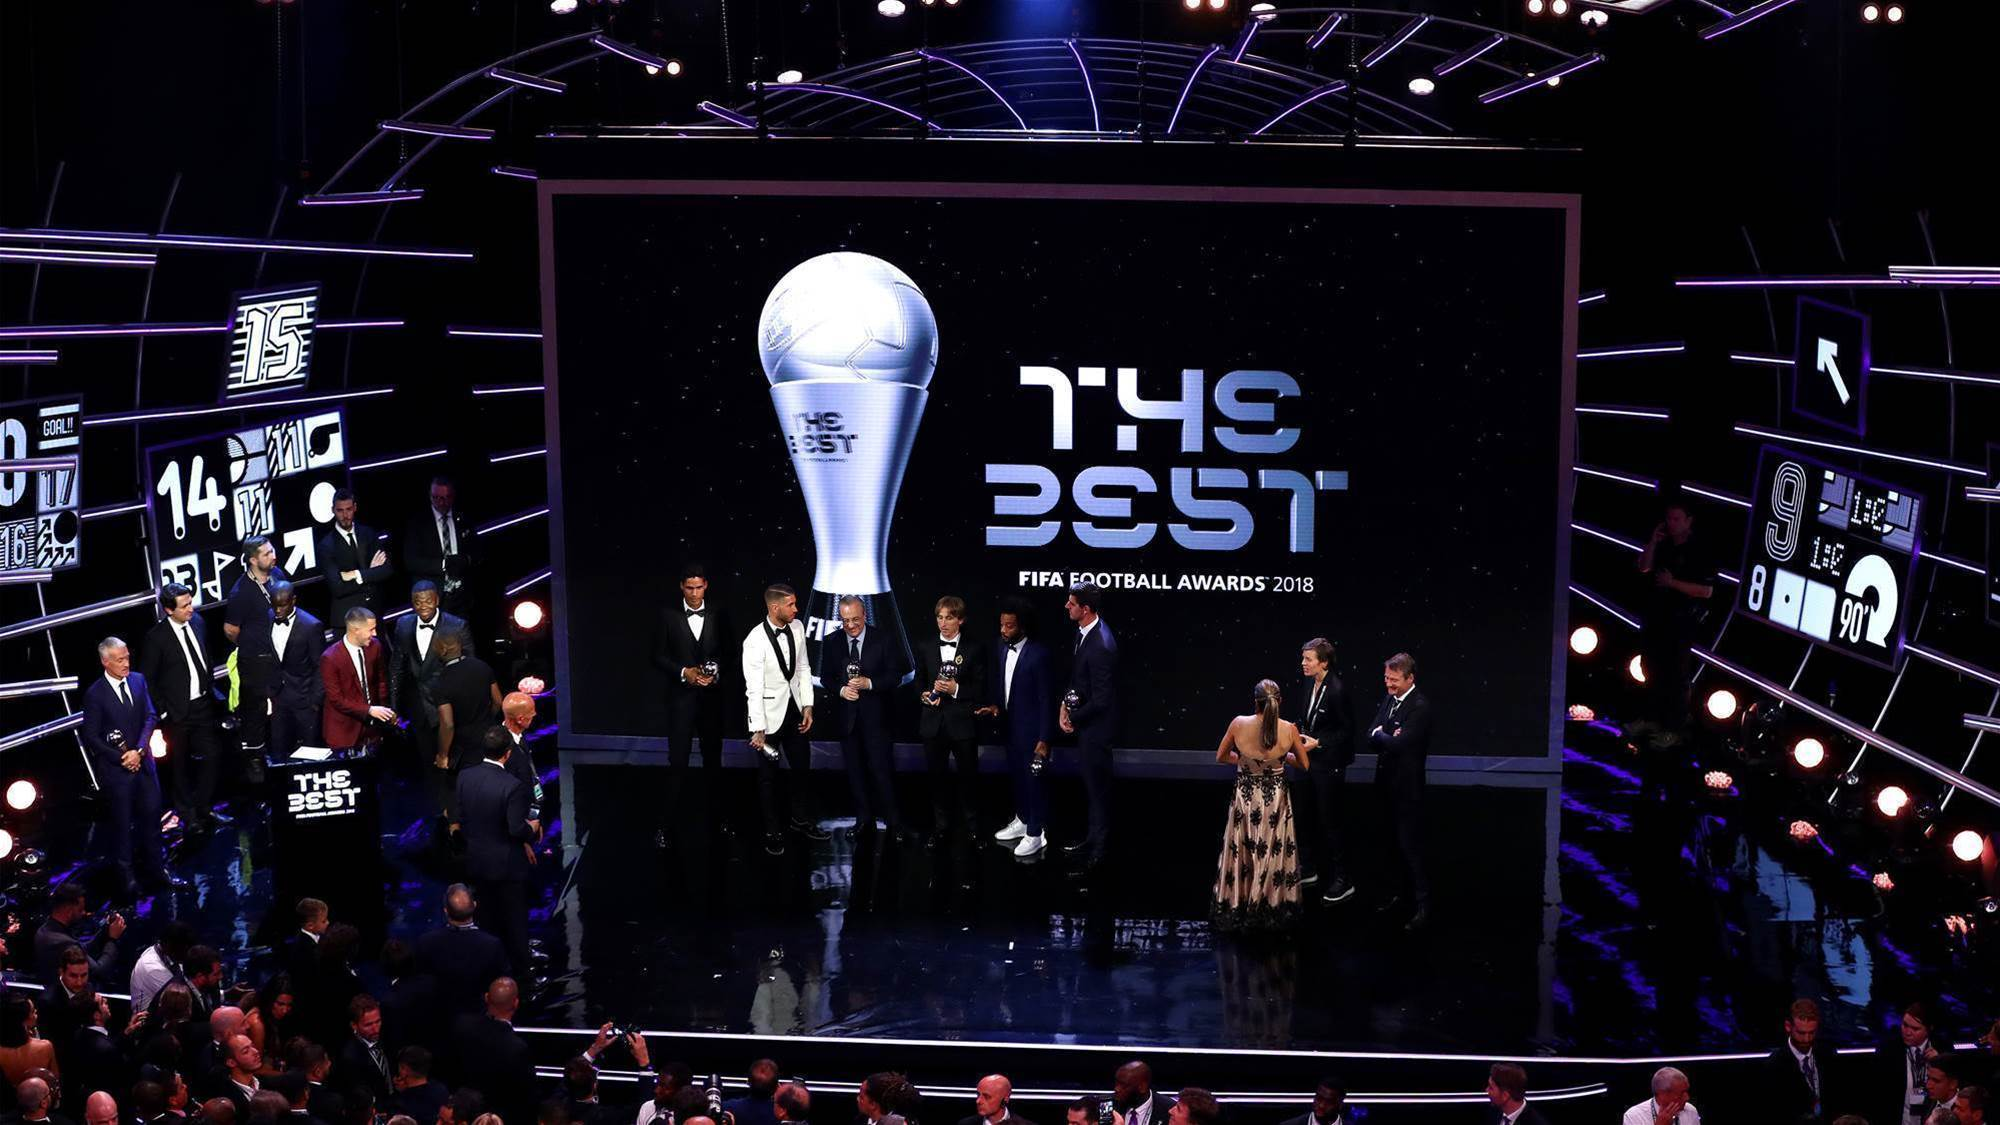 Voting needs to change to improve FIFA Best Award